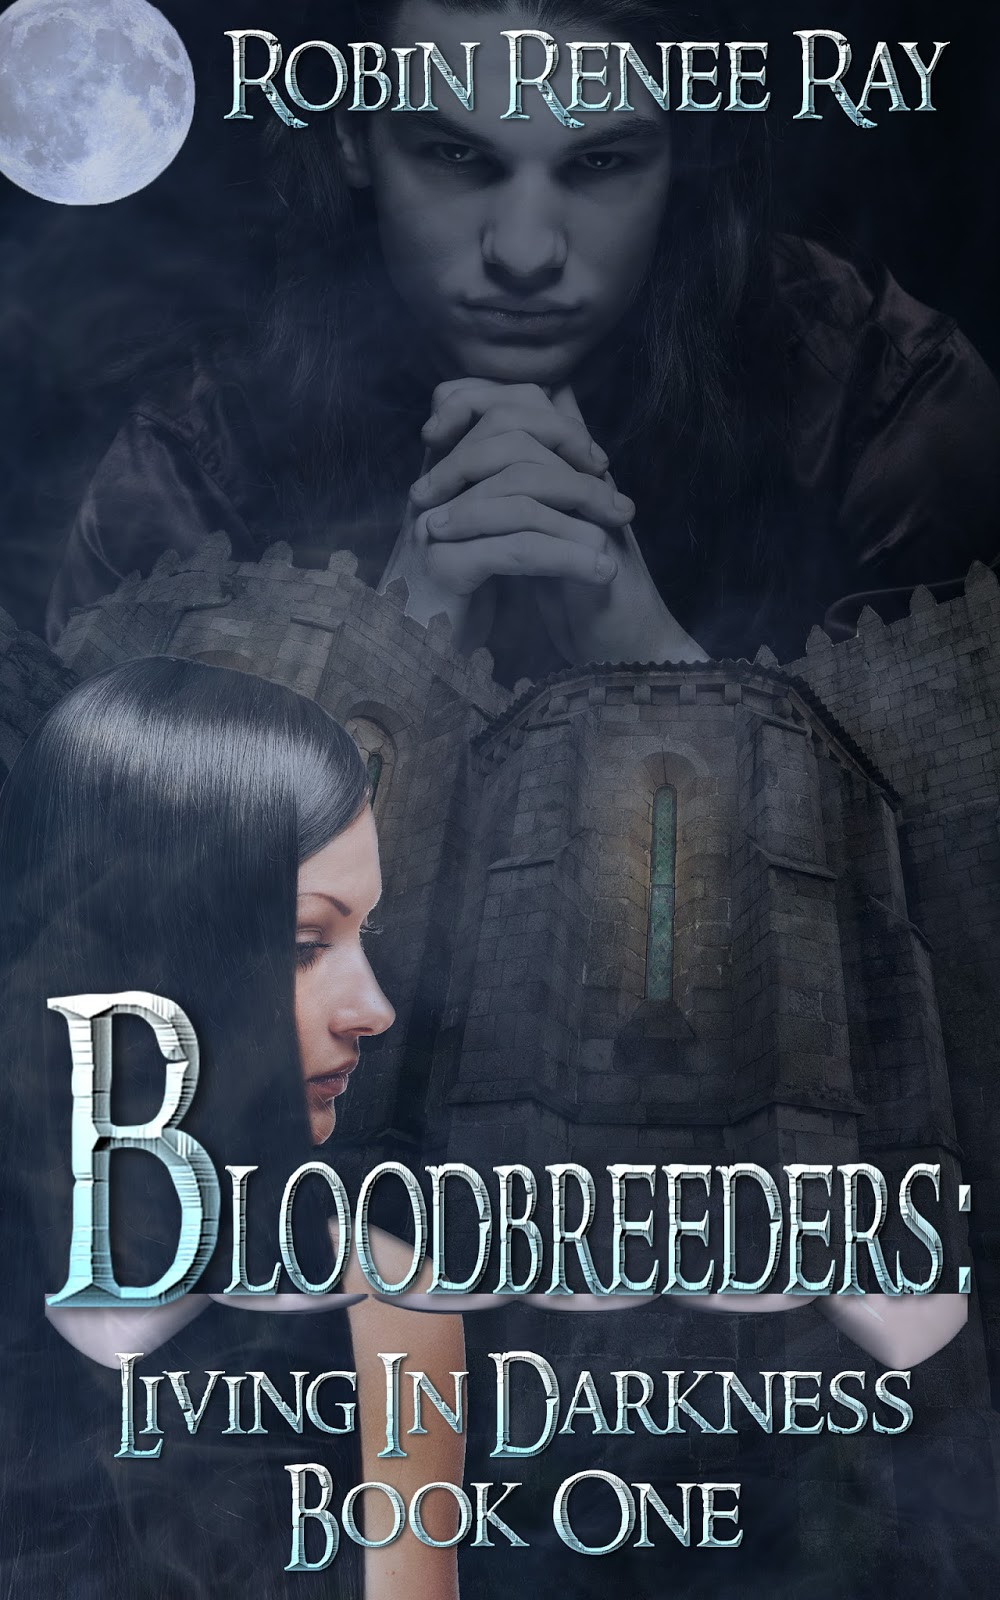 http://www.amazon.com/Bloodbreeders-Darkness-Robin-Renee-Ray-ebook/dp/B00F587YP6/ref=sr_1_2?ie=UTF8&qid=1392582641&sr=8-2&keywords=bloodbreeders